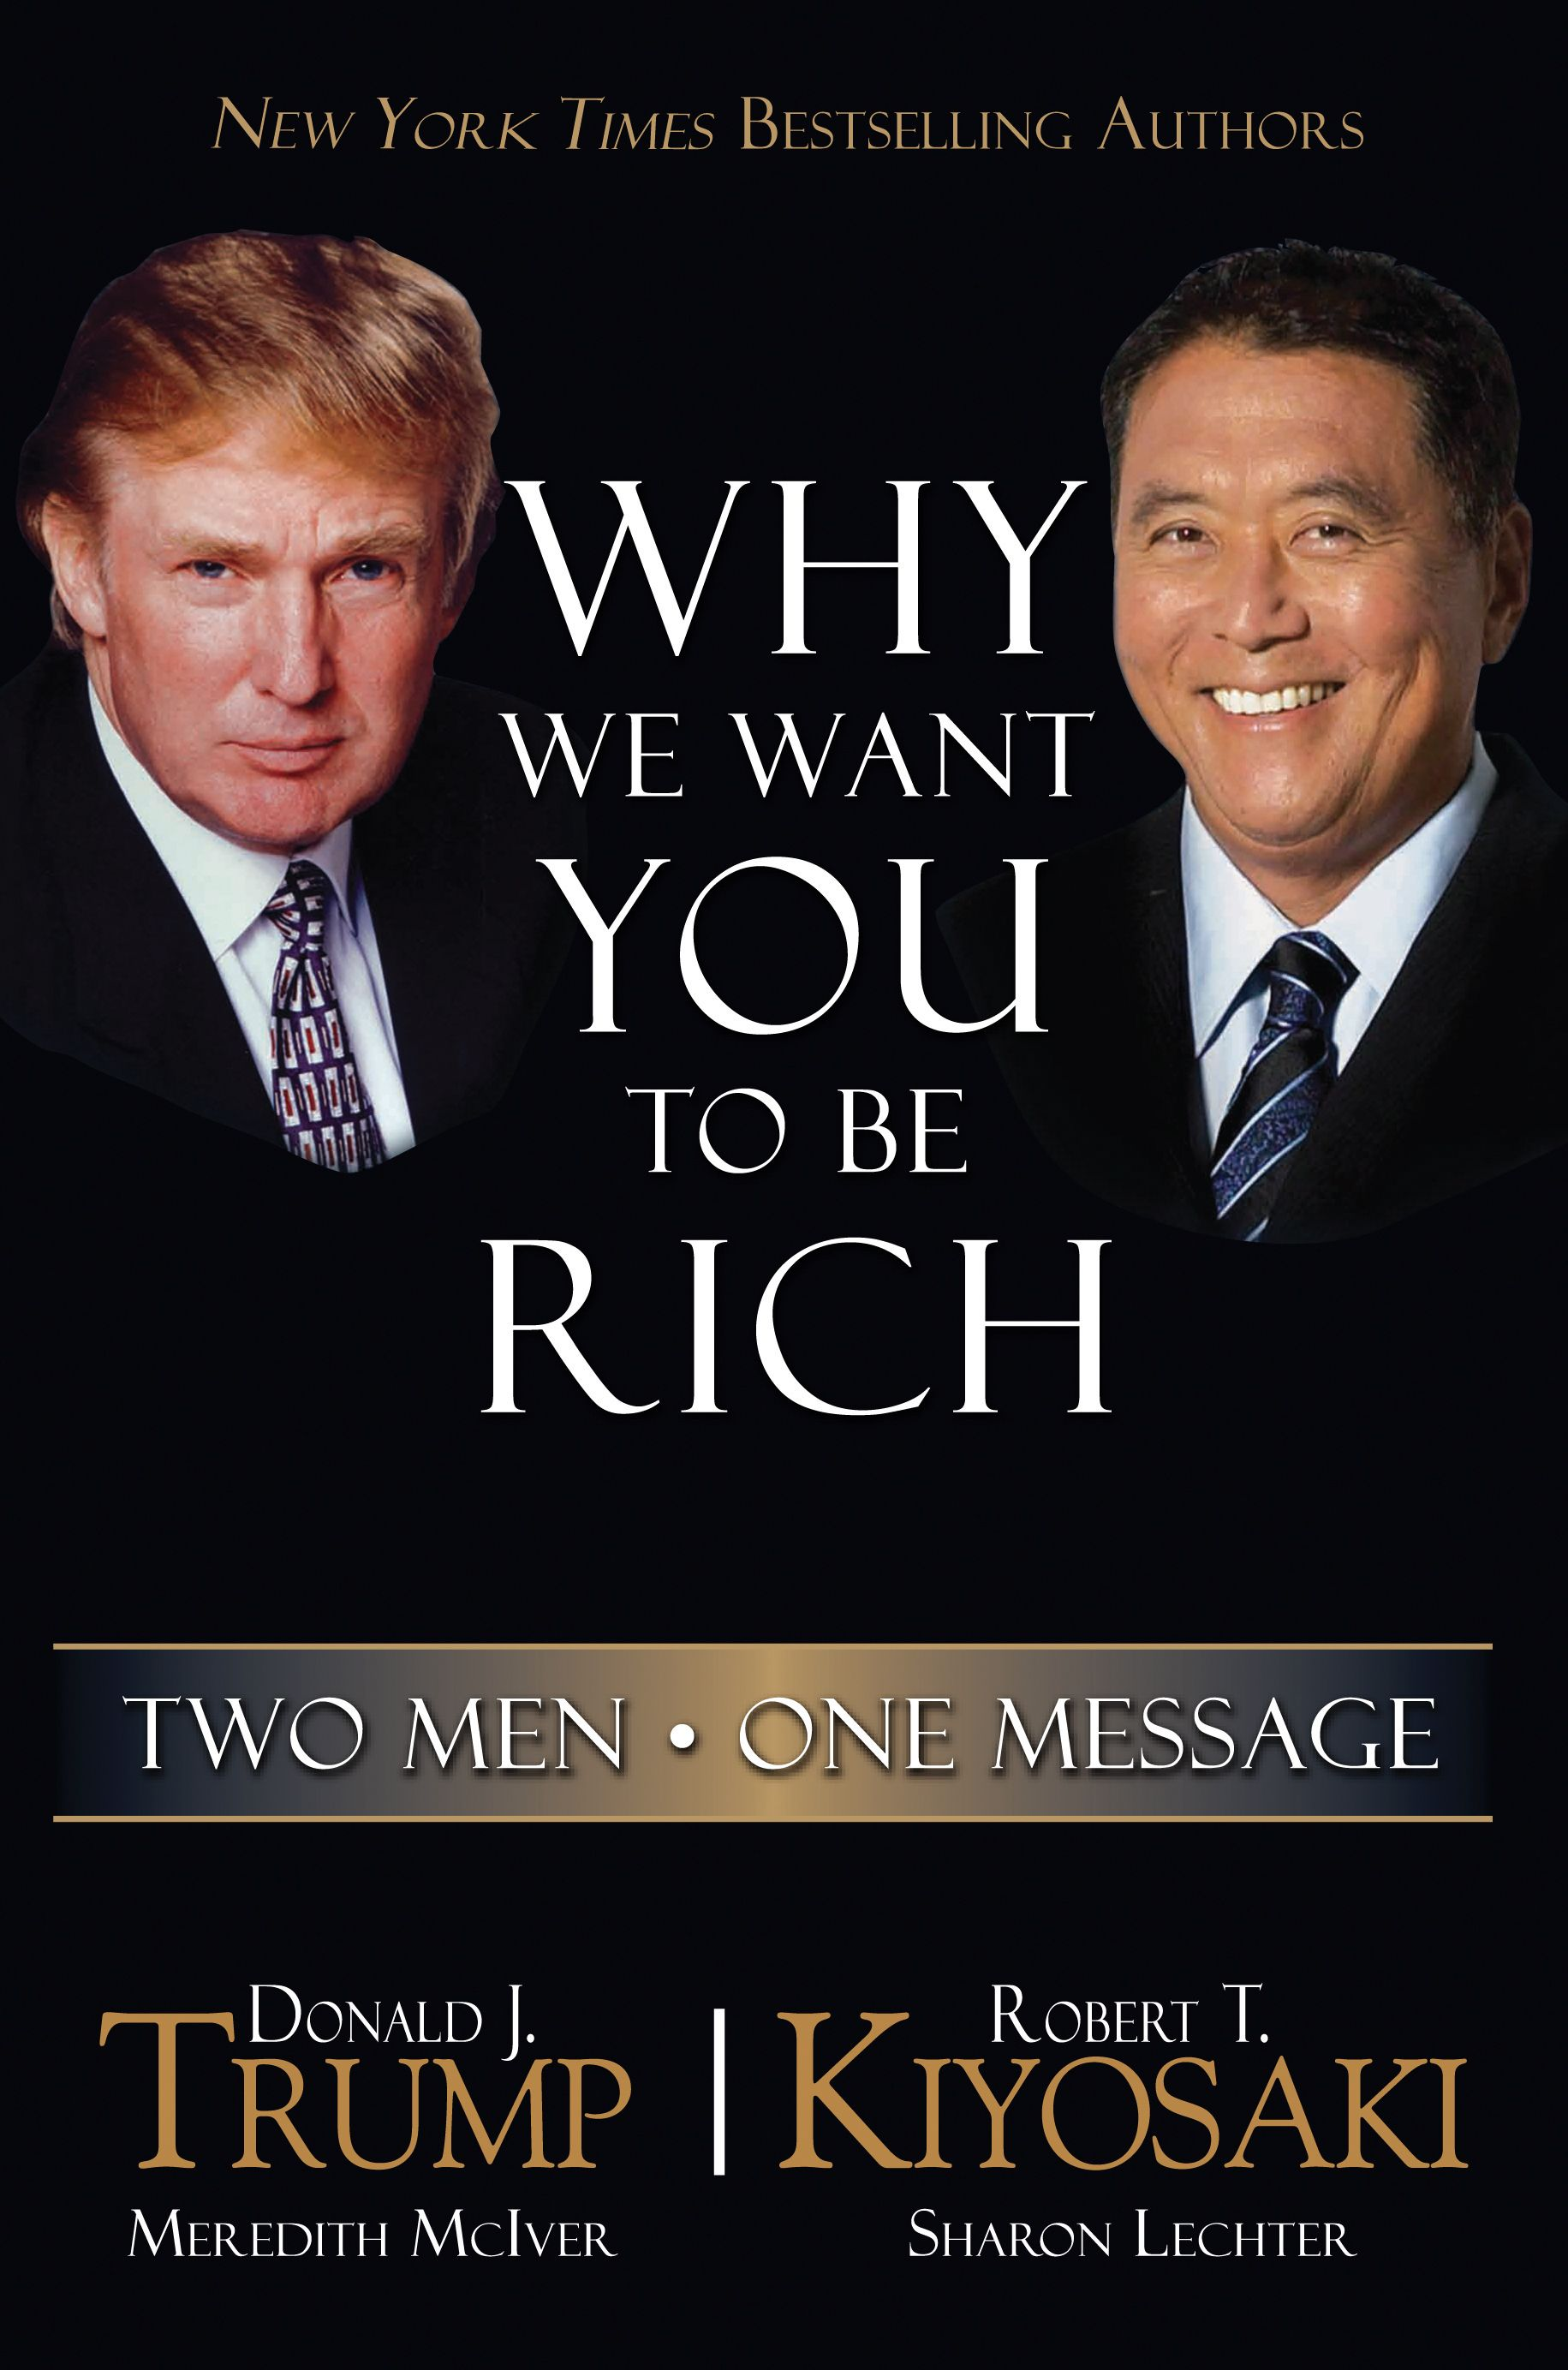 books by robert kiyosaki author of rich dad poor dad why we want you to be rich donald trump robert kiyosaki terrible politician but never doubt his financial intelligence